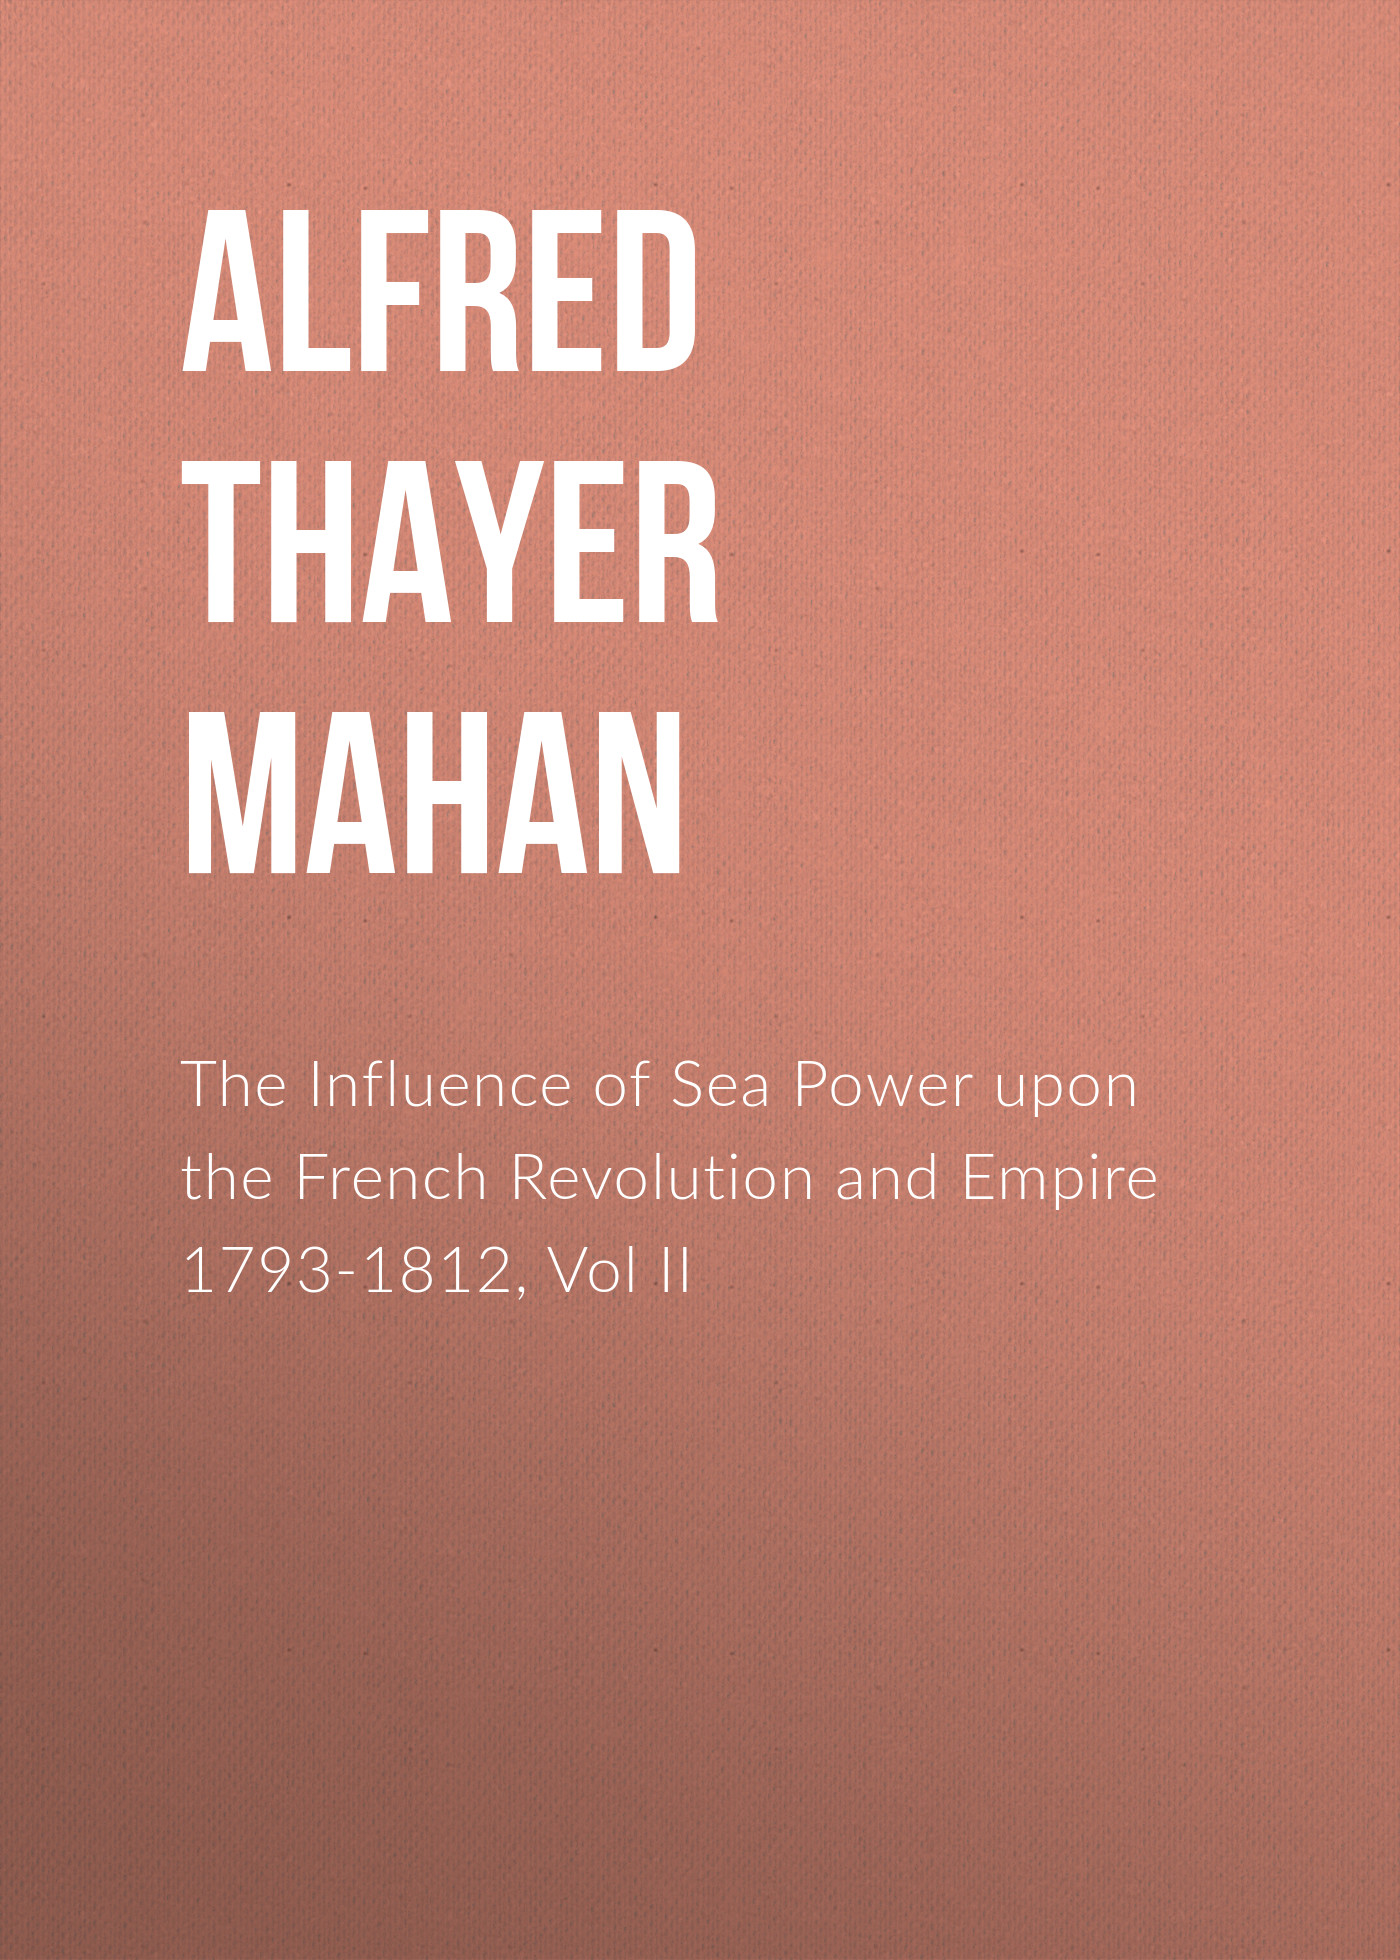 Alfred Thayer Mahan The Influence of Sea Power upon the French Revolution and Empire 1793-1812, Vol II alfred thayer mahan from sail to steam recollections of naval life